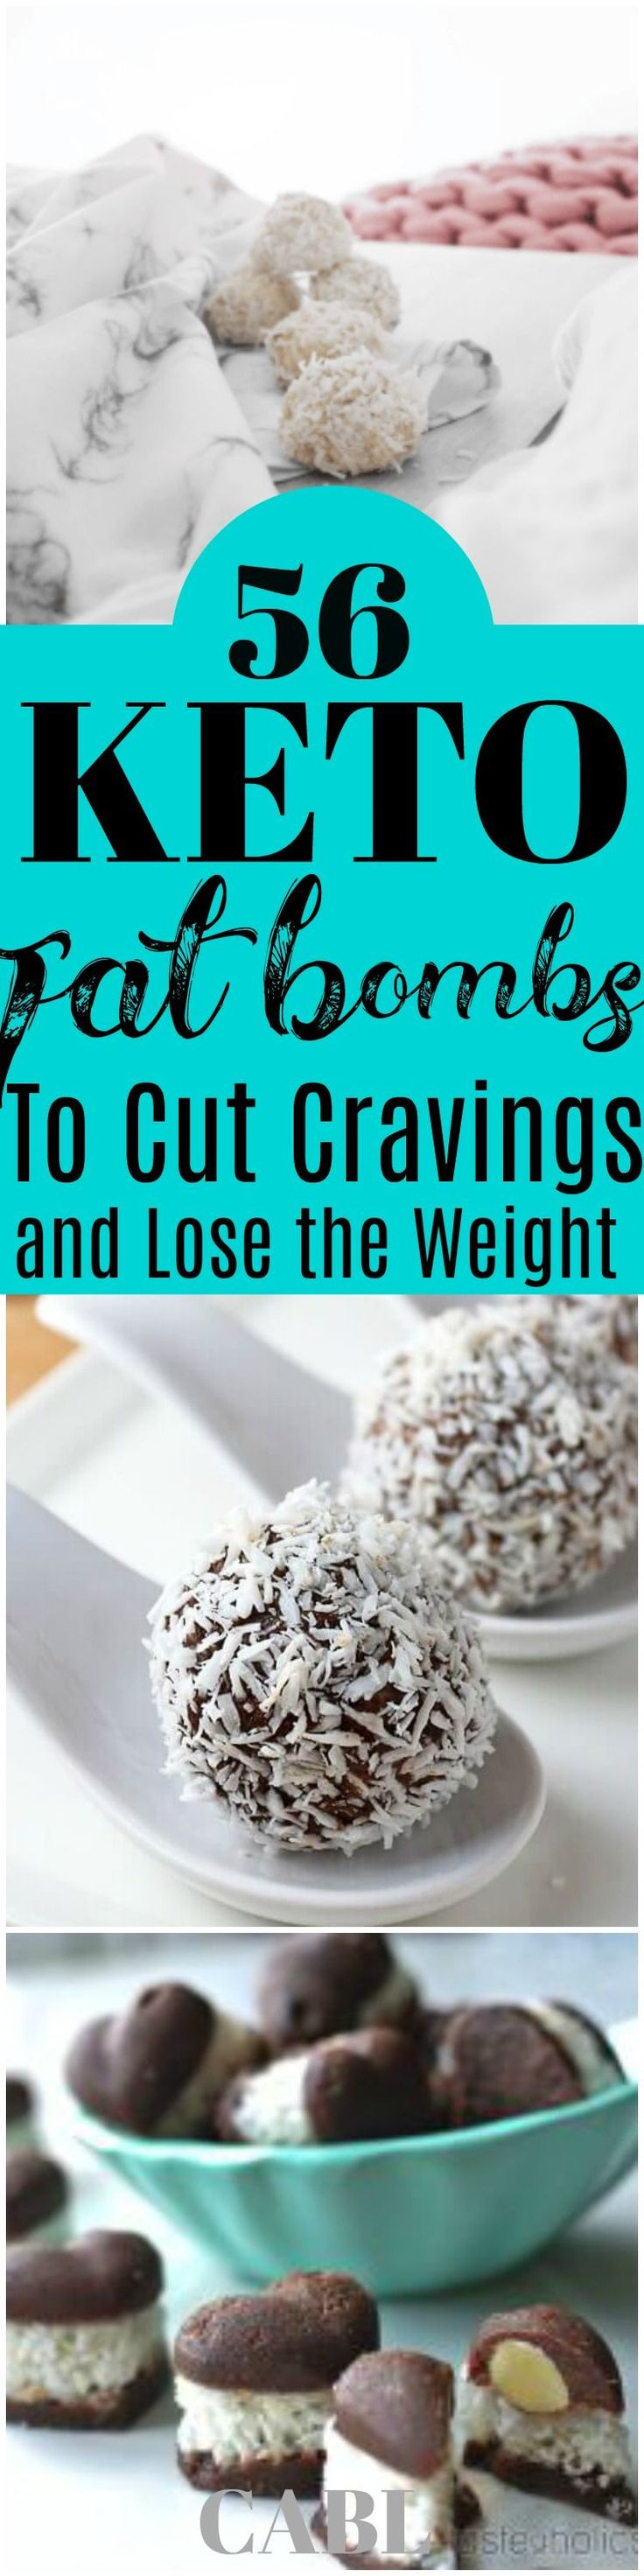 56 Fat Bombs To Cut The Cravings and Lose The Weight #keto #ketogenic #lowcarb #fatbombs